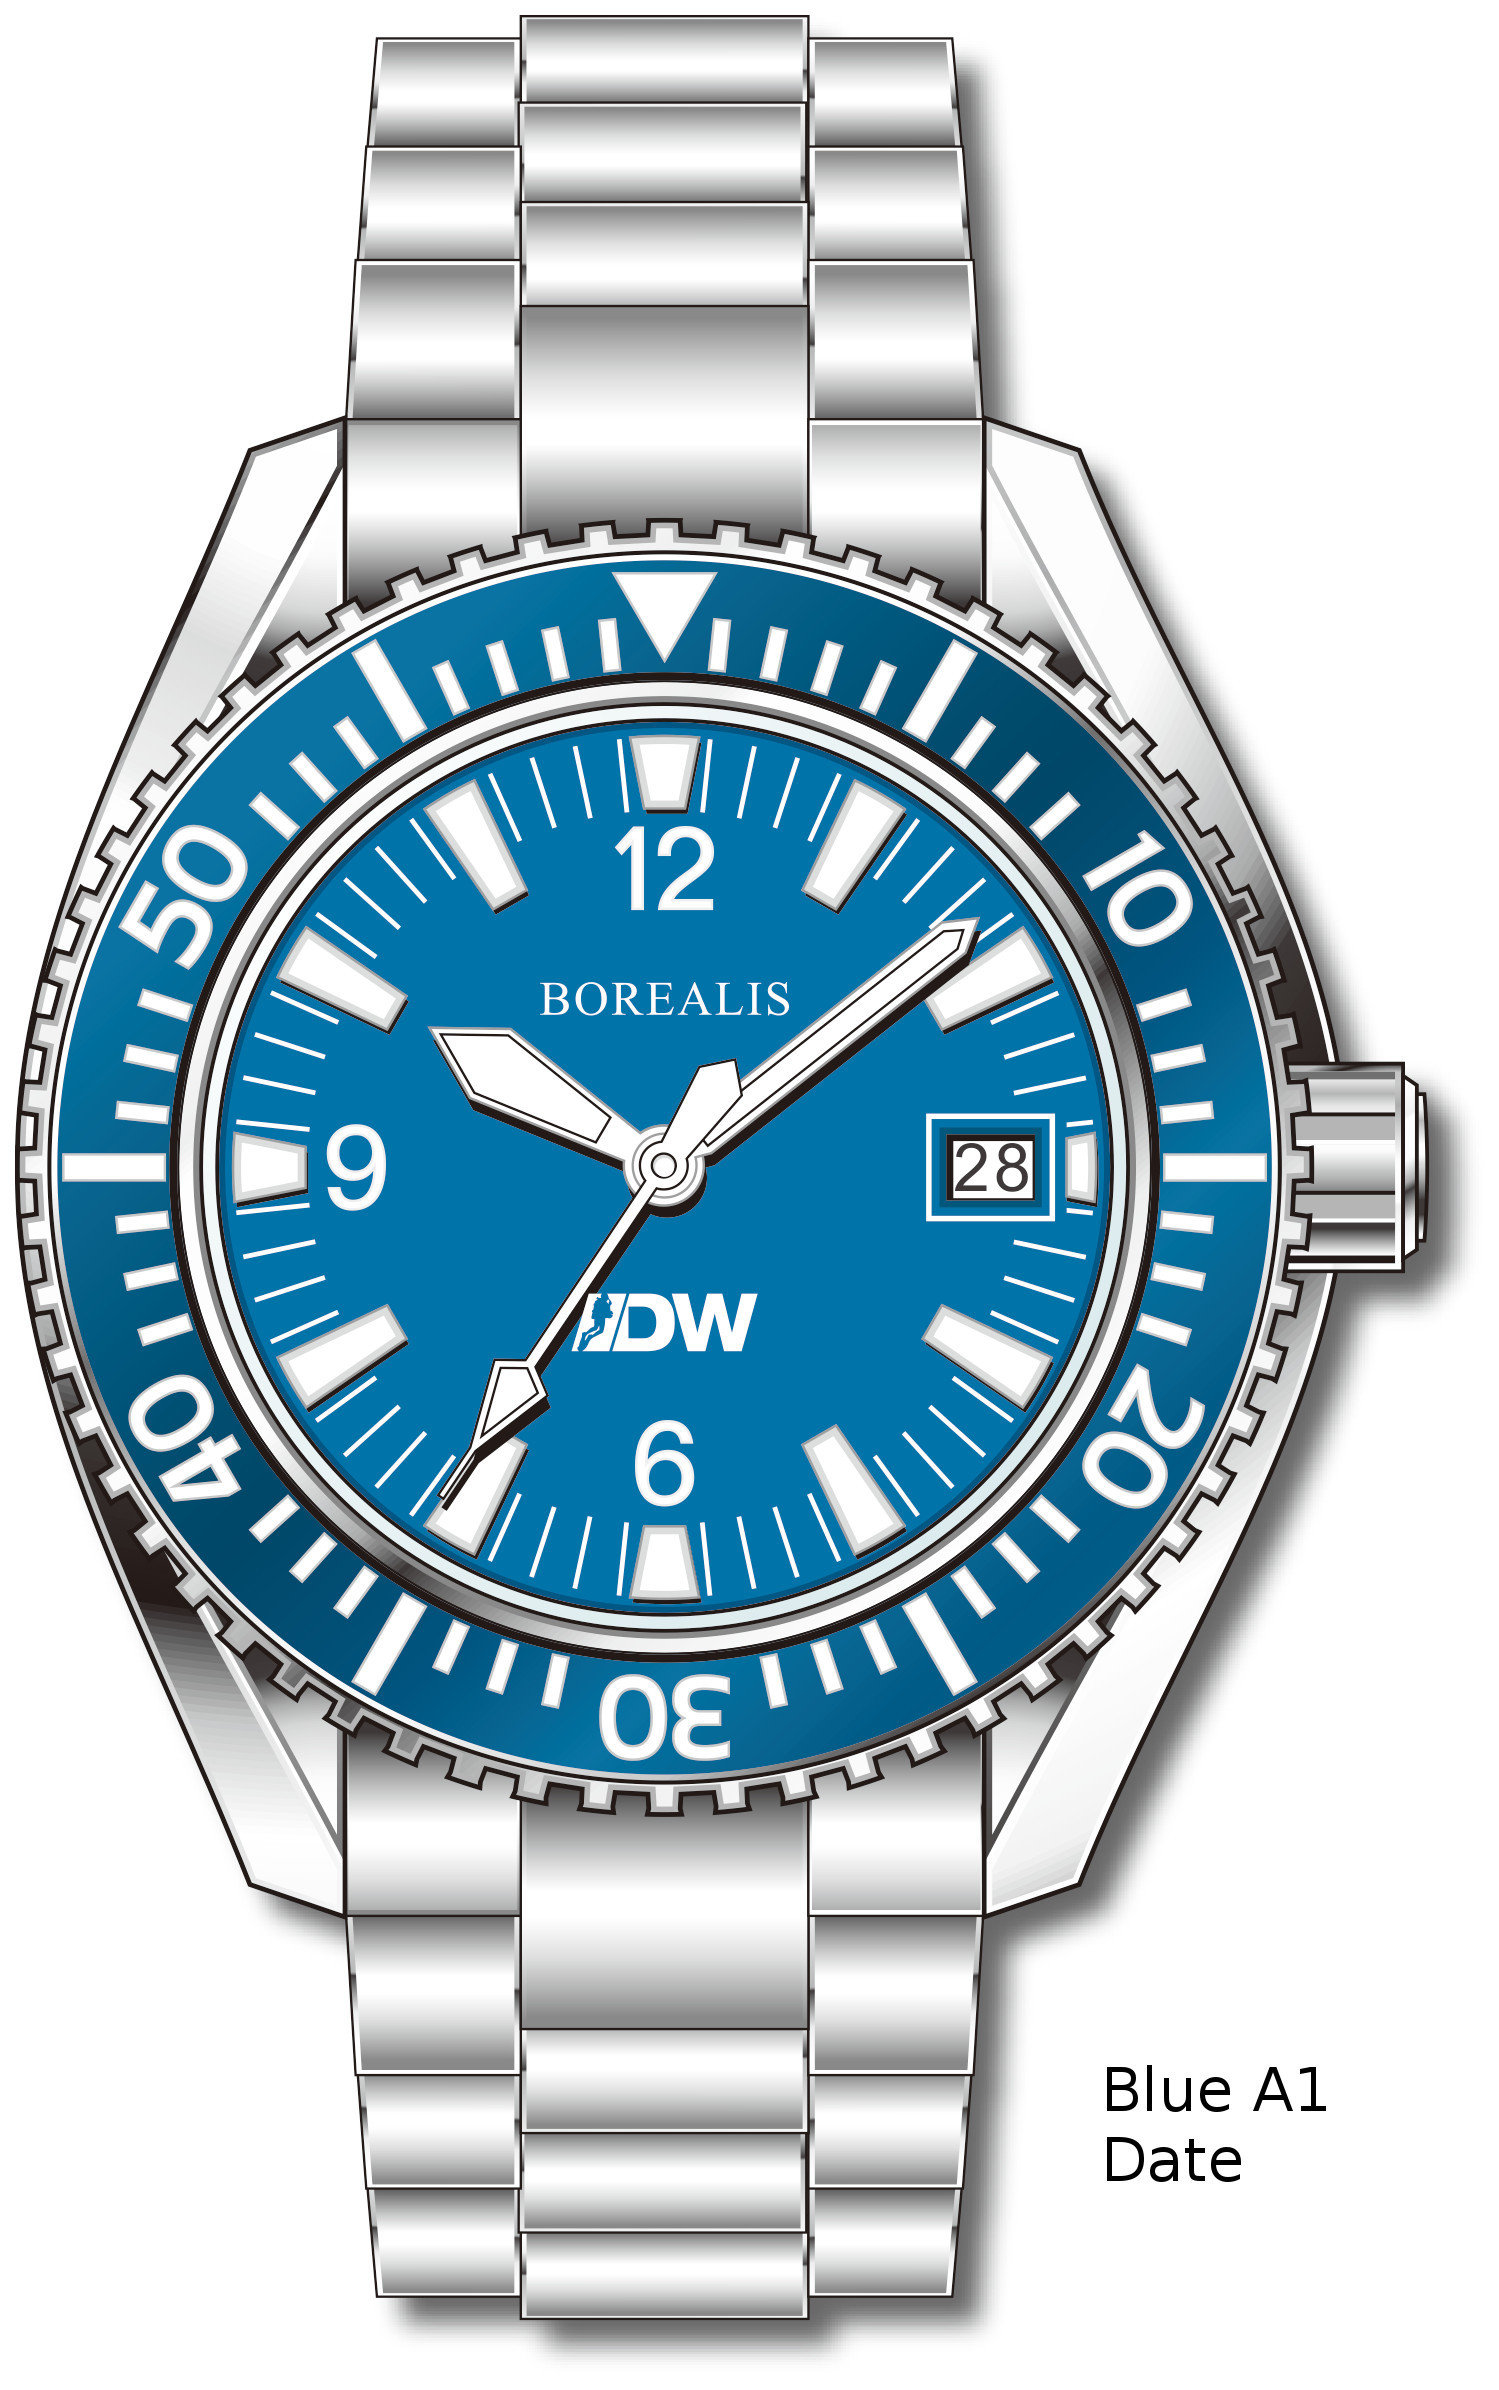 Pre-Order Borealis Estoril 300 for Diver's Watches Facebook Group Blue Dial Arabic Numbers Date Blue A1 Date EDWFBGBLUEA1DT